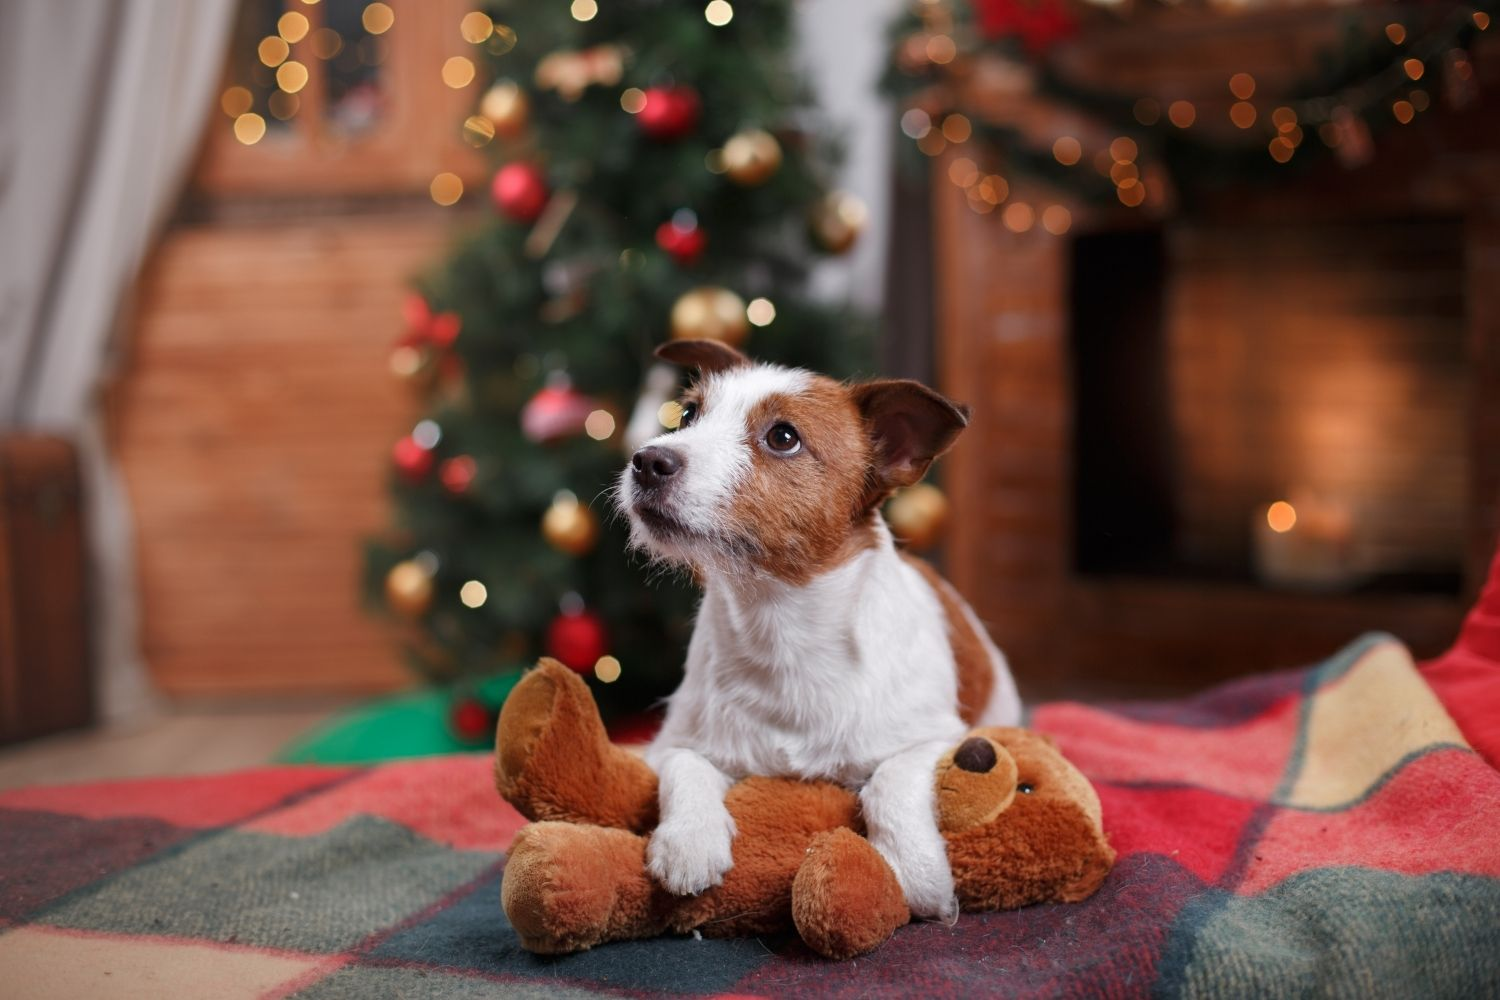 Want to Keep Your Dog Safe During the Holiday Season? Use These 9 Apps.